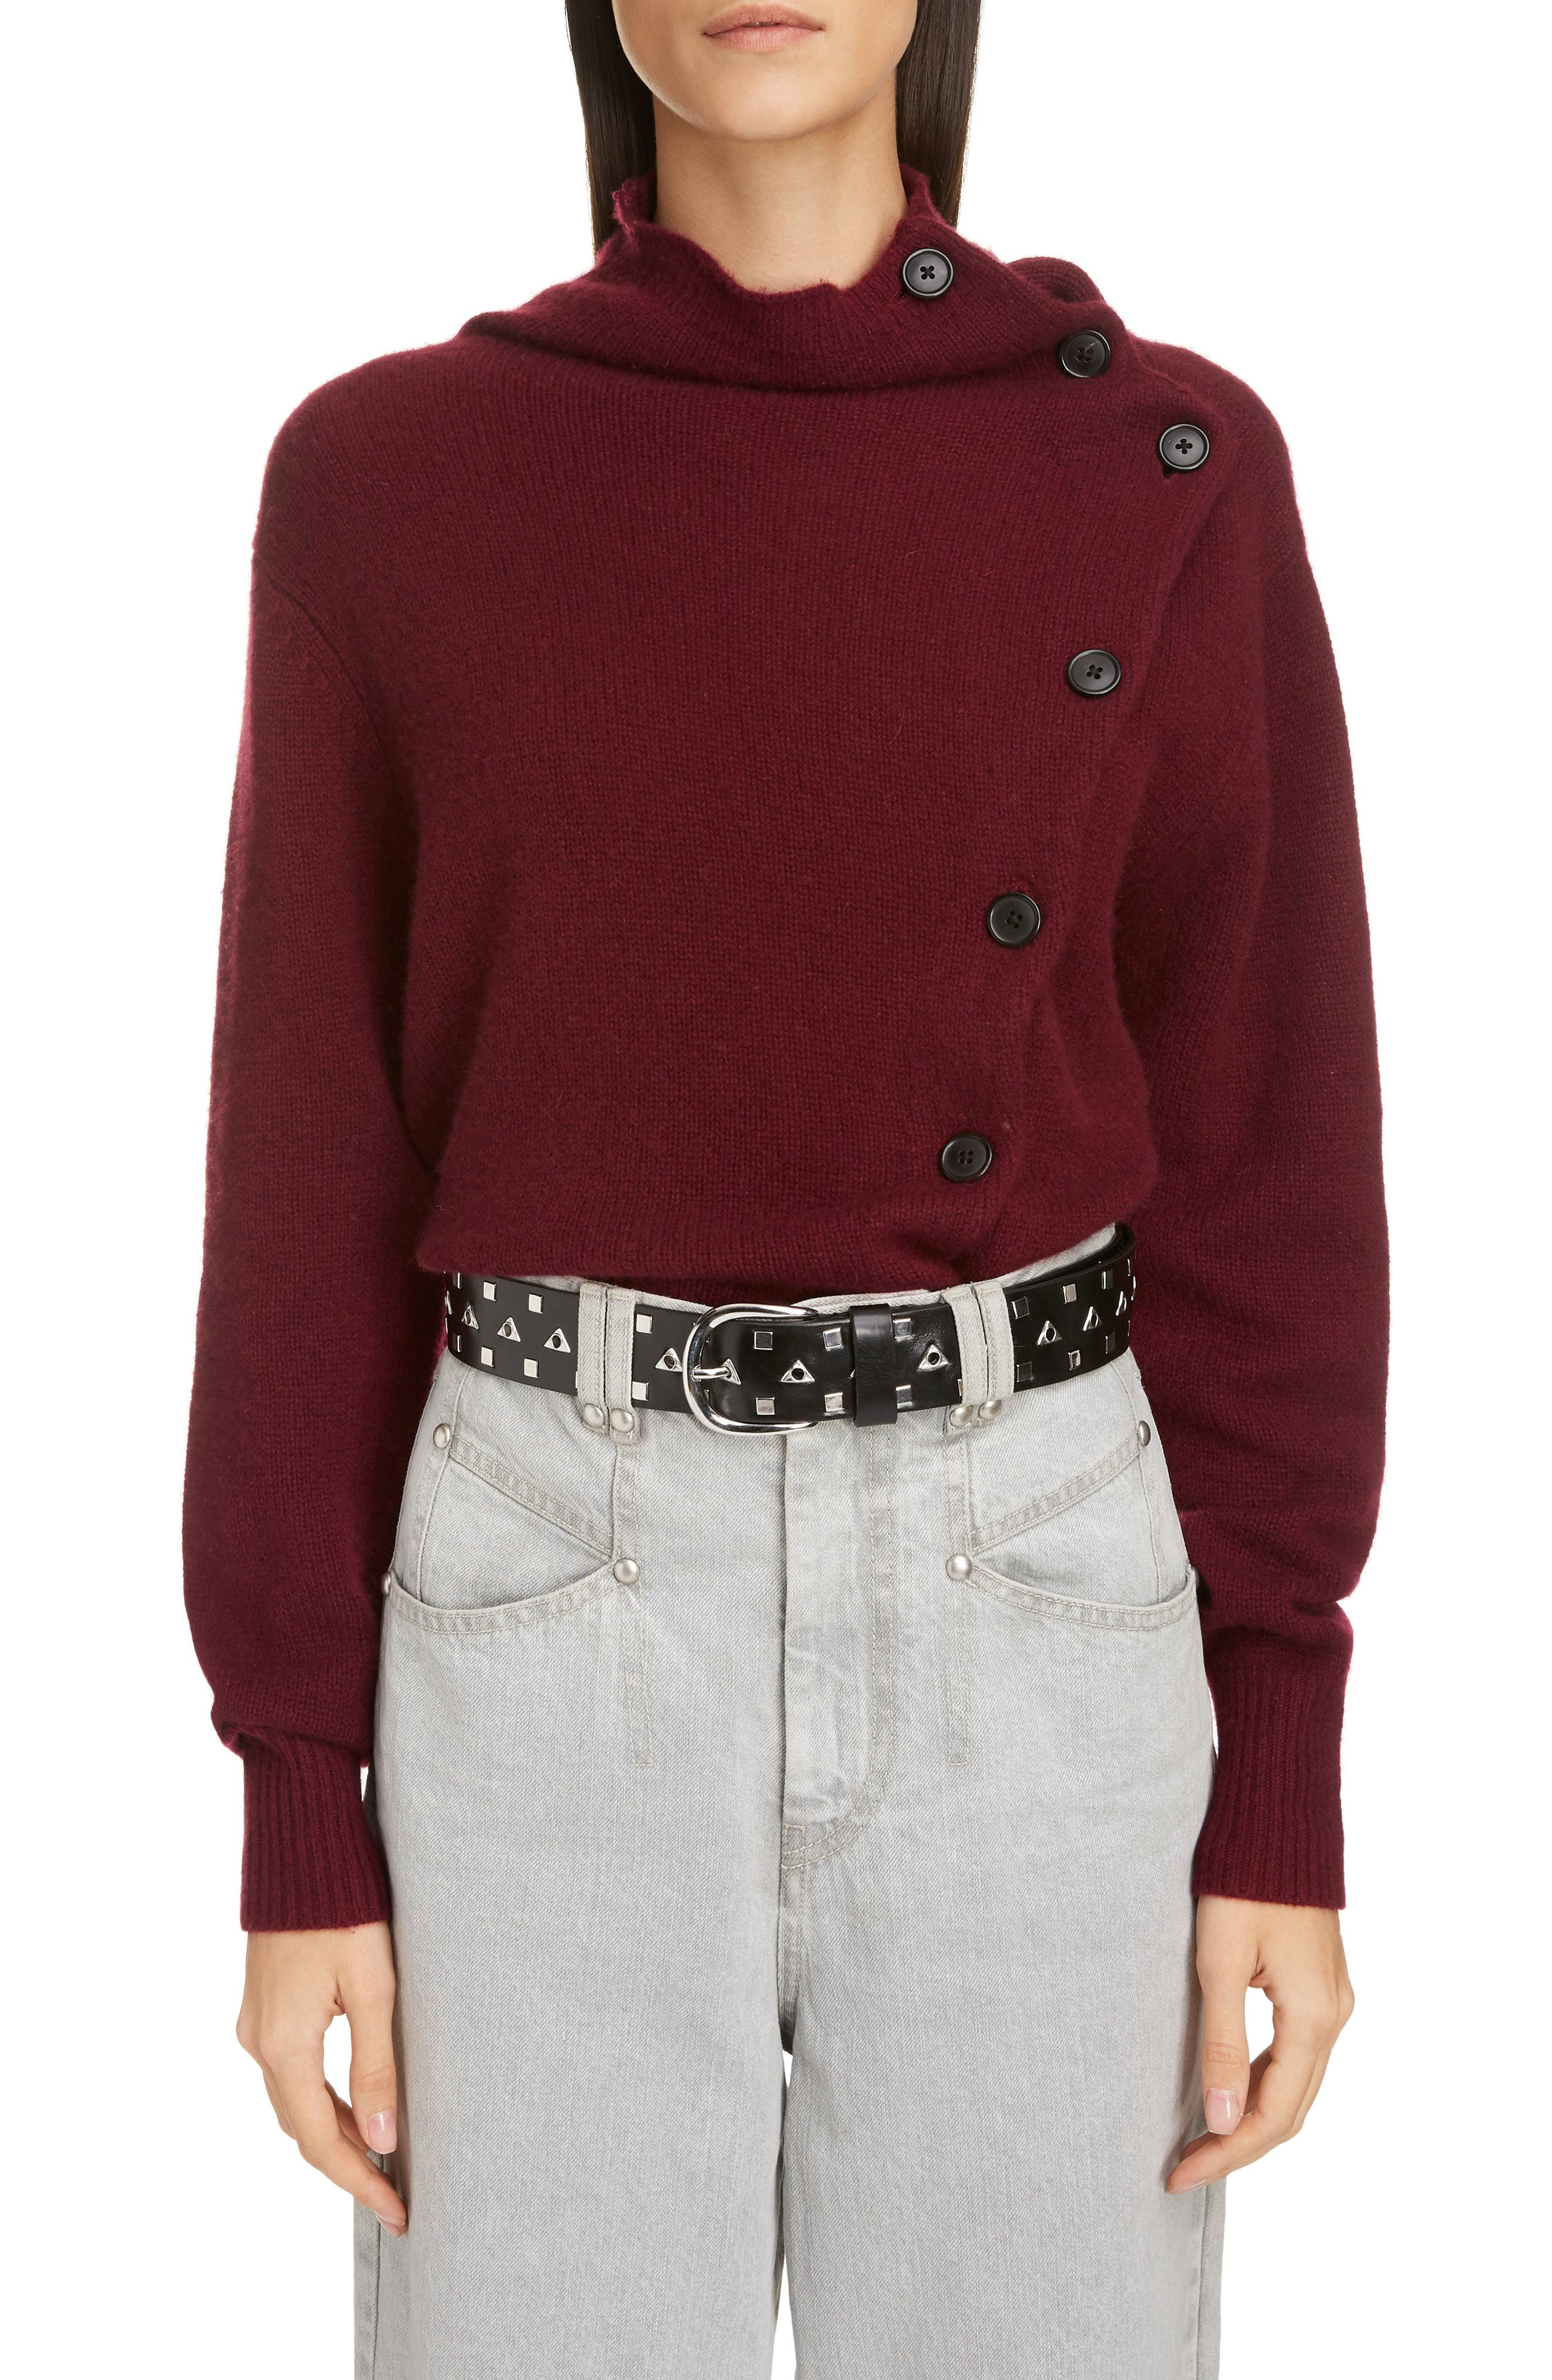 009e6a5163ae Women's Turtleneck Sweaters | Nordstrom